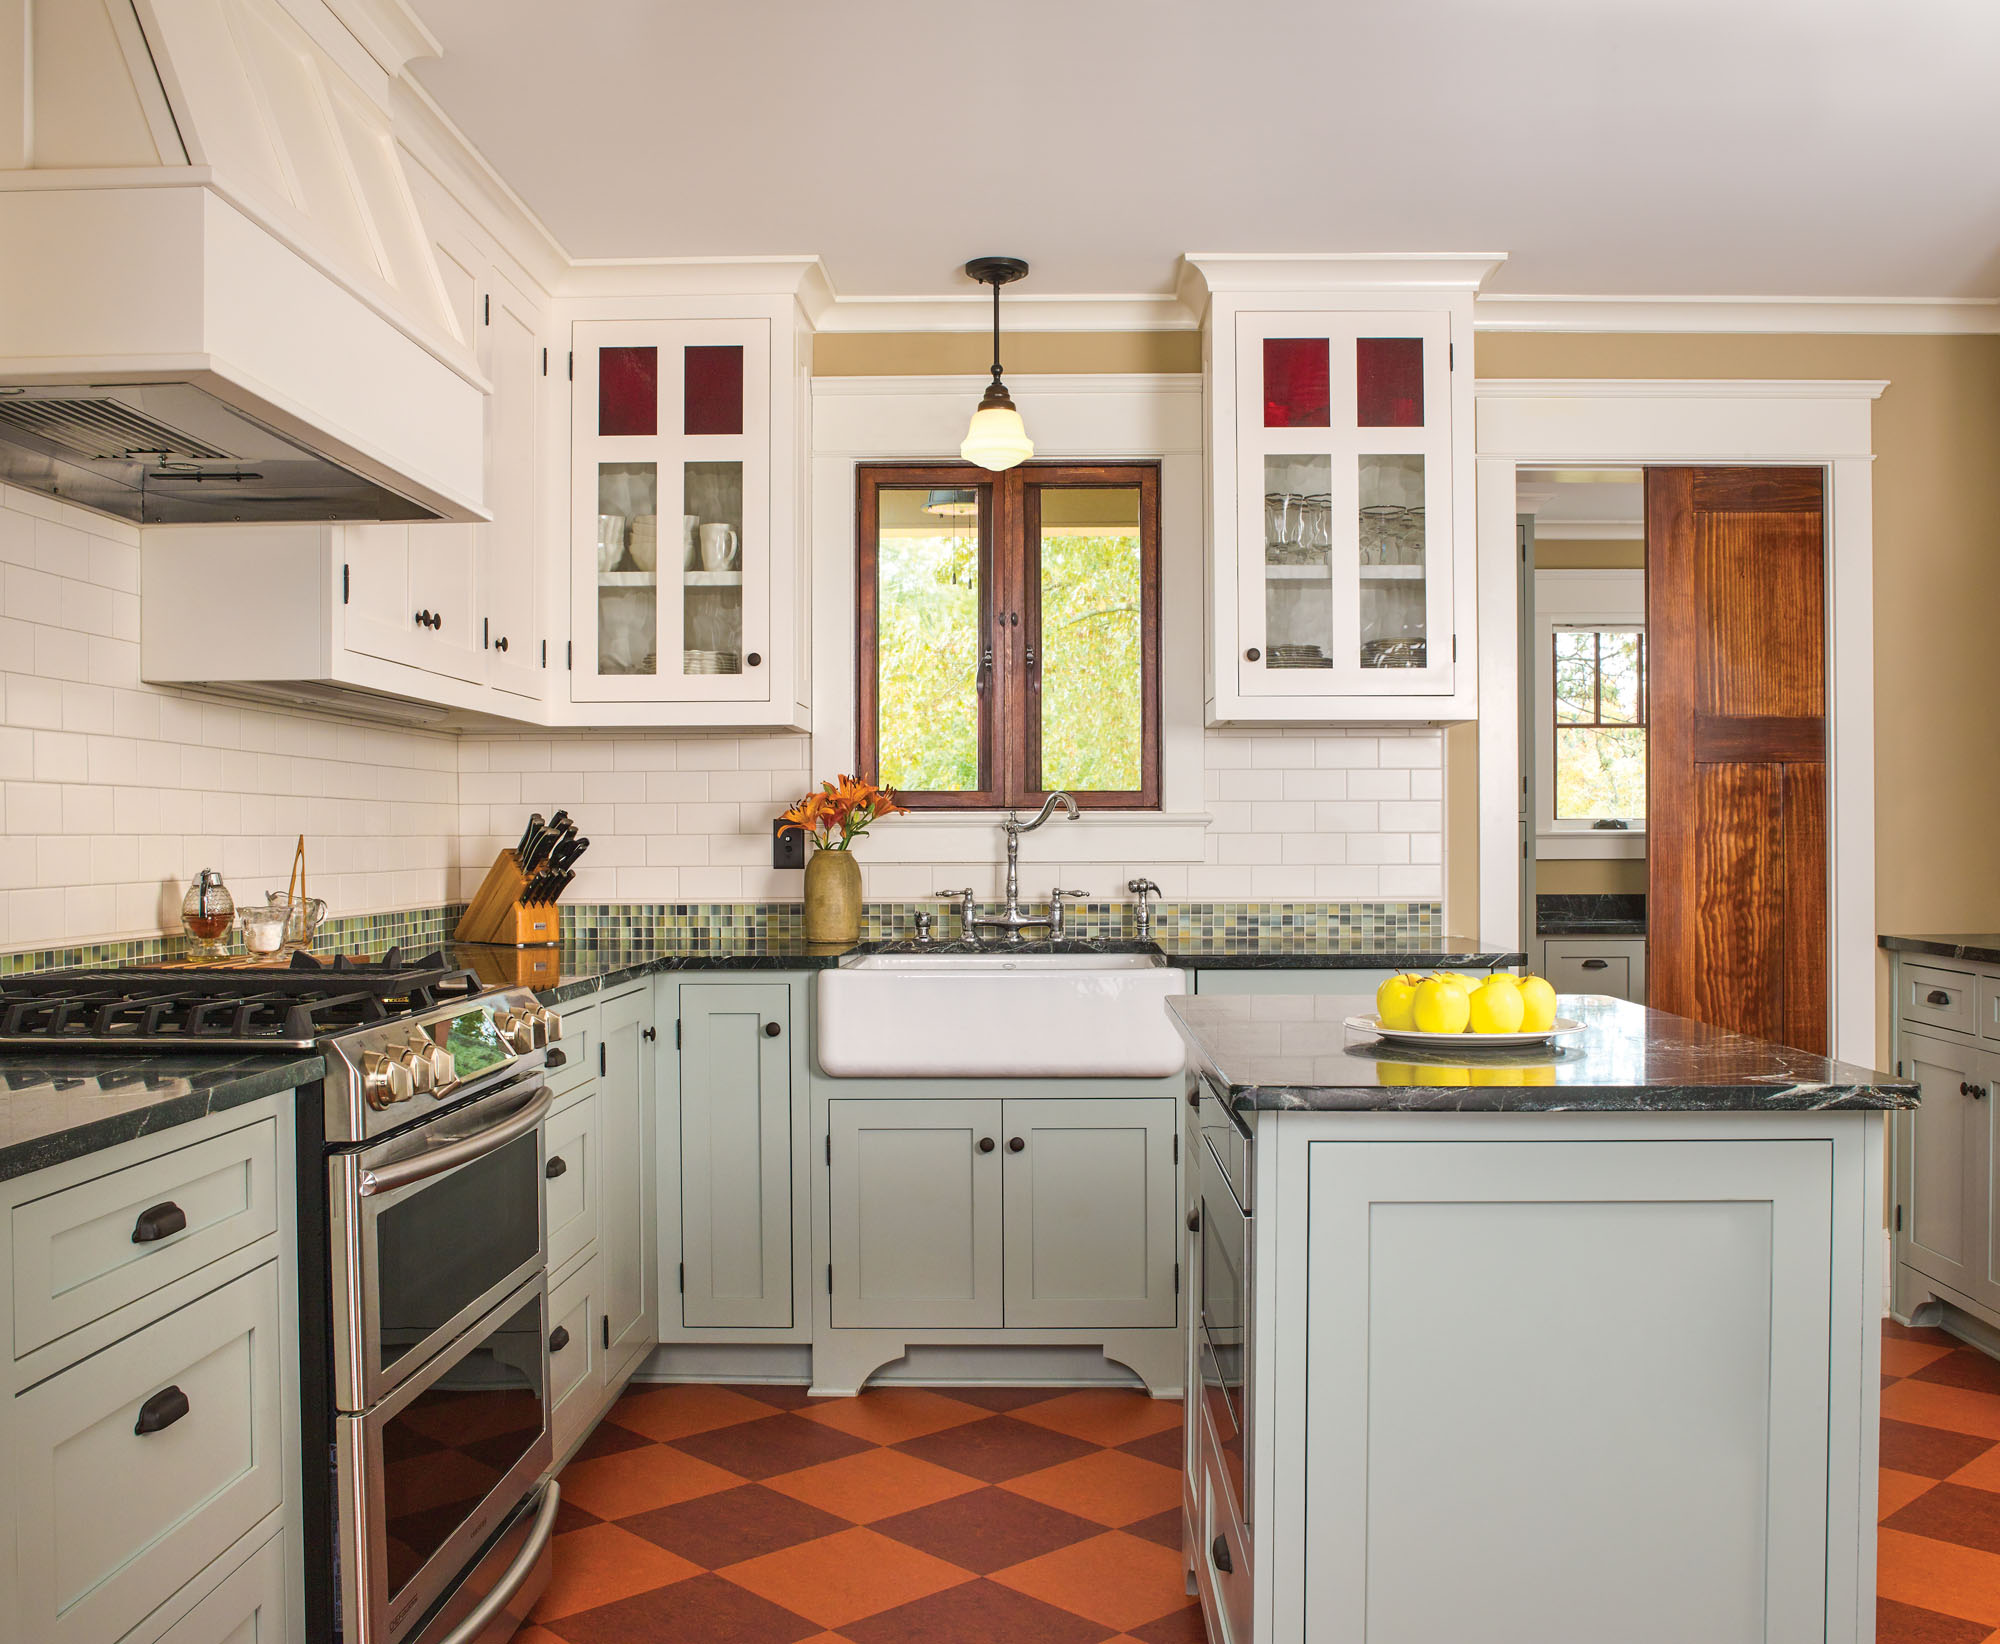 soapstone countertops, Marmoleum flooring, Craftsman kitchen